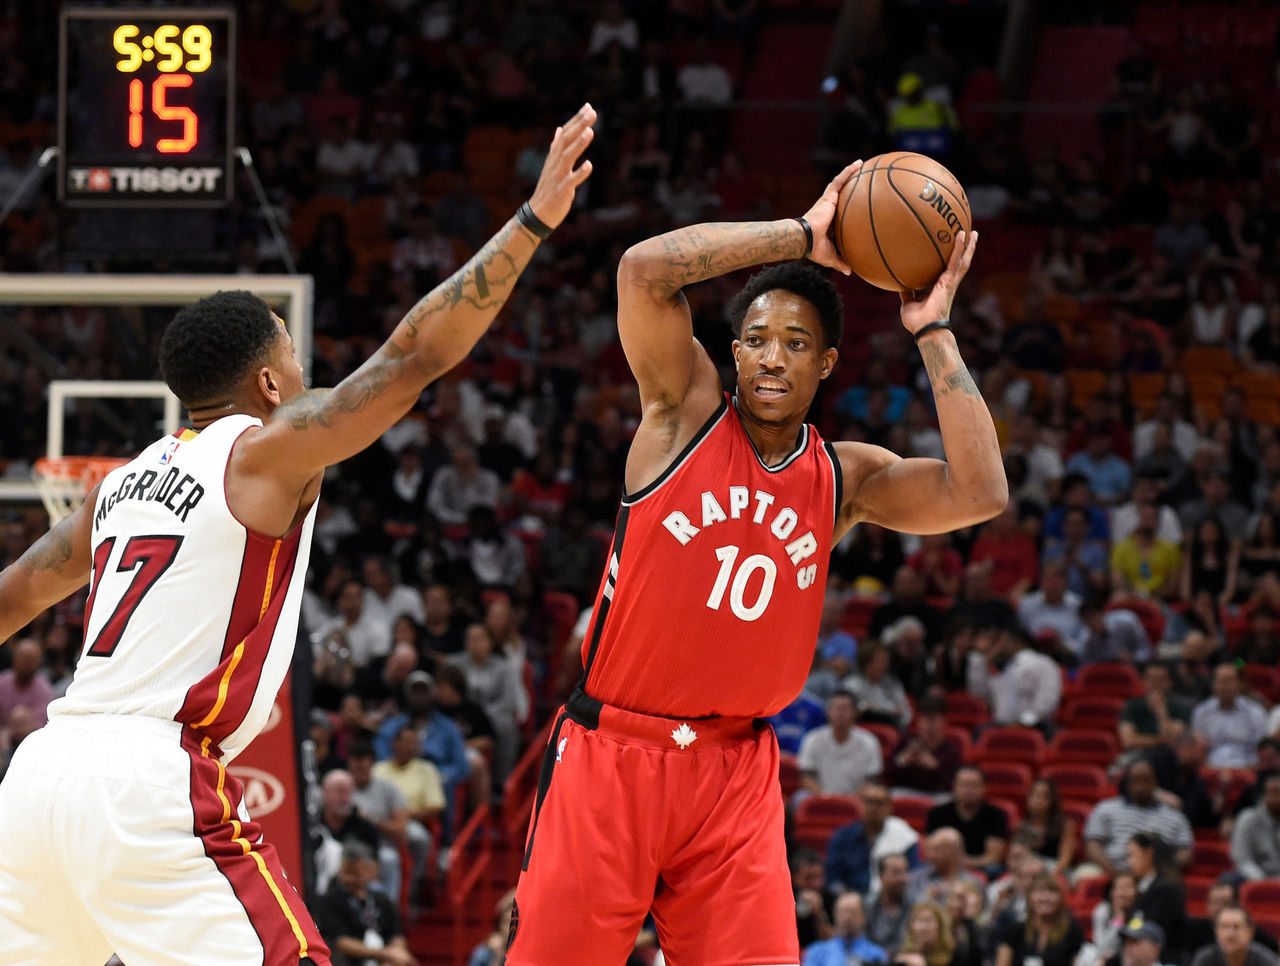 Cropped_2017-03-24t004501z_406787236_nocid_rtrmadp_3_nba-toronto-raptors-at-miami-heat